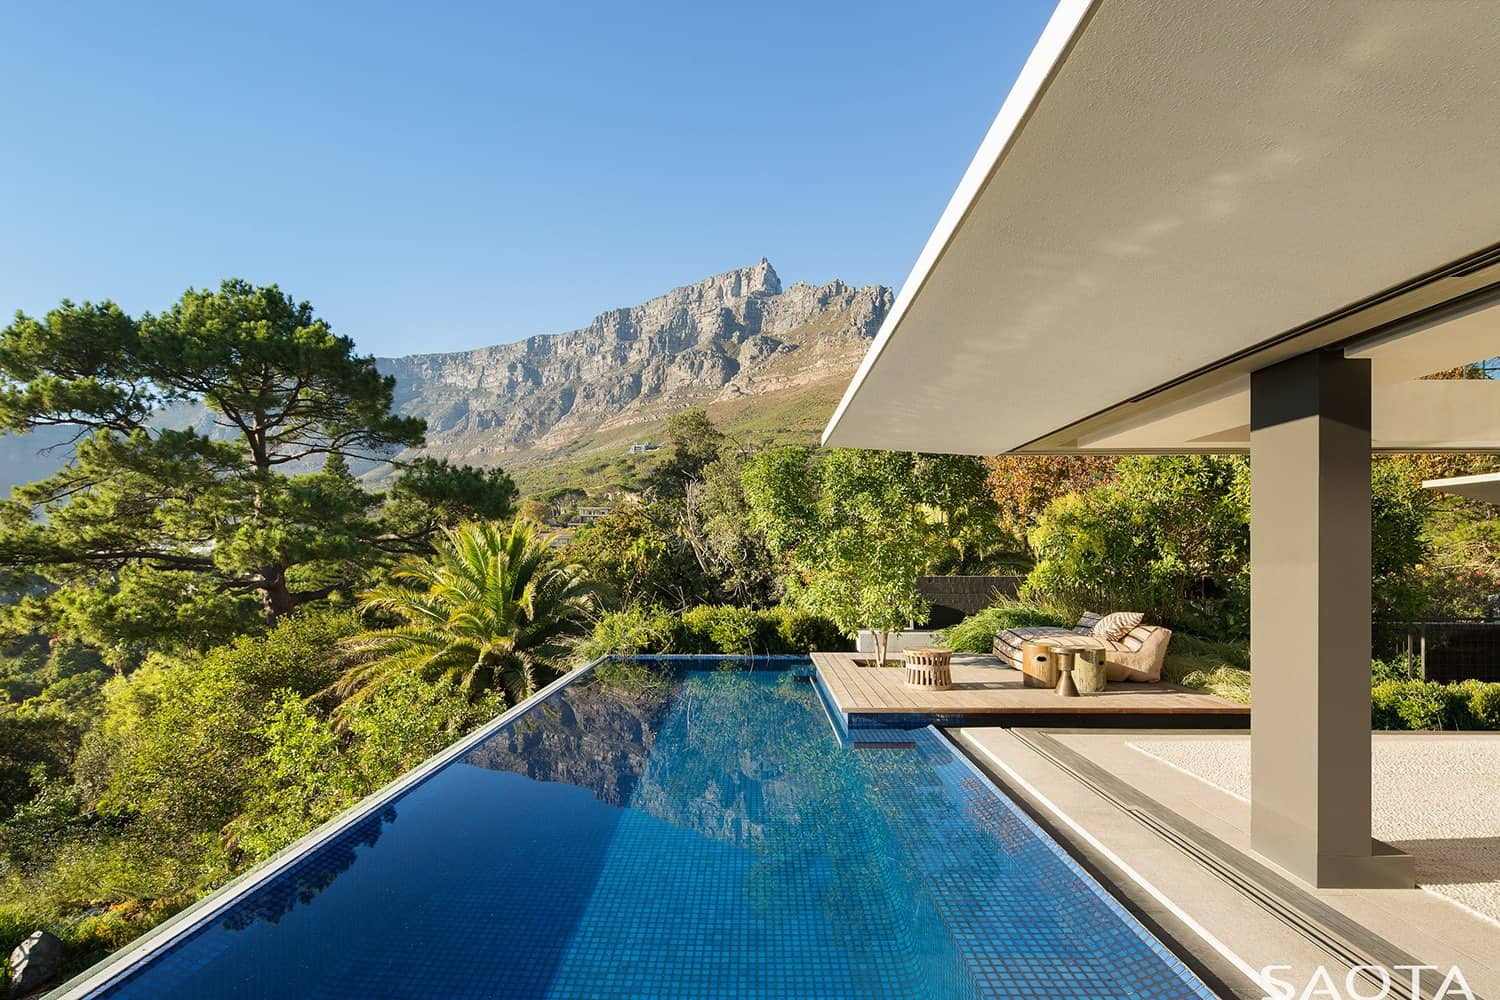 A serene indoor outdoor oasis at the foot of Table Mountain, South Africa